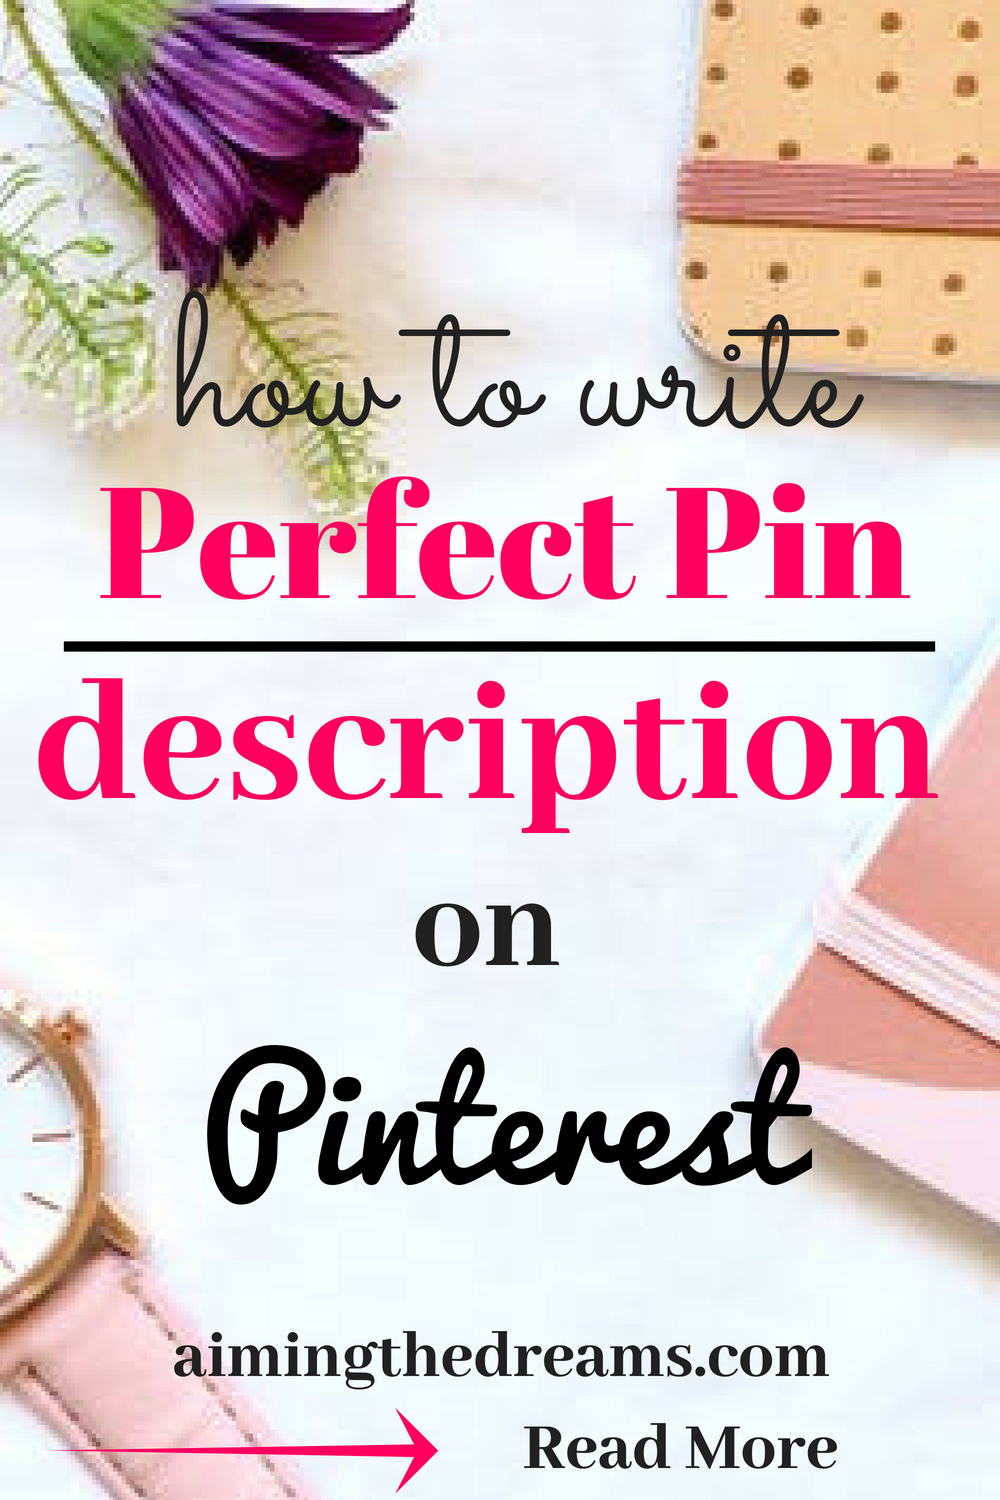 Perfect keyword rich description is required for your pins to stan out in smart feed. Pinterest read your image as well as description to show relevant pins .